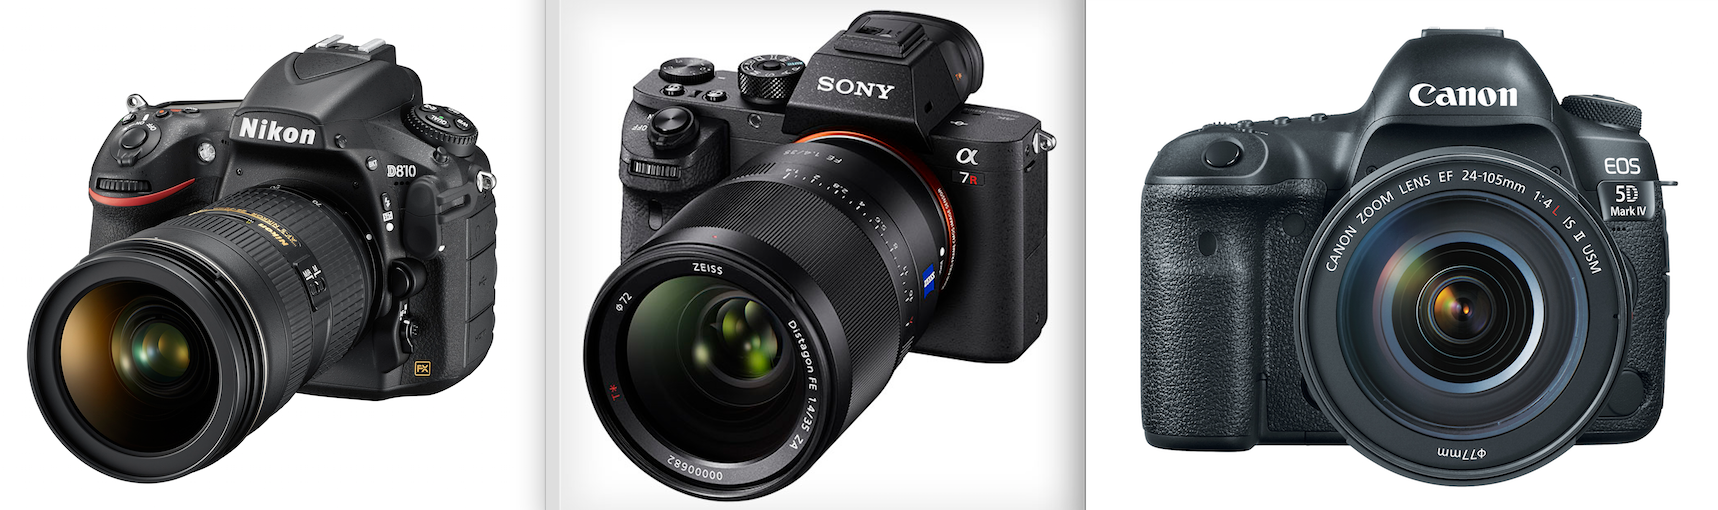 Canon\'s 5D Mark IV vs. Nikon D810 vs. Sony a7 R II | PDNPulse